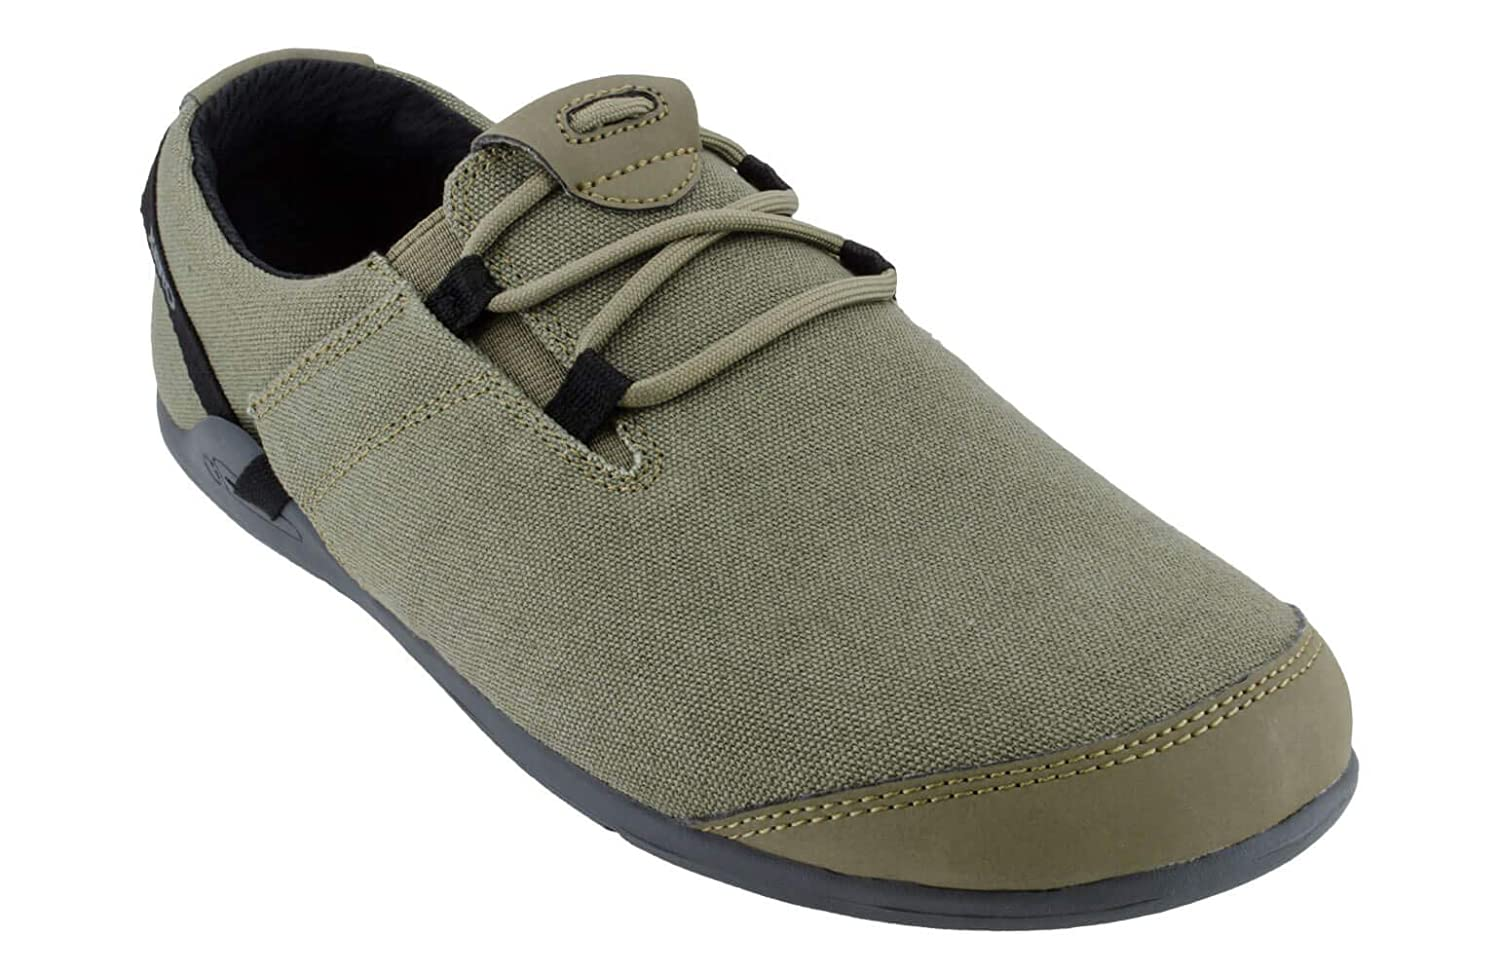 Amazoncom Xero Shoes Hana Mens Casual Canvas Barefoot Inspired